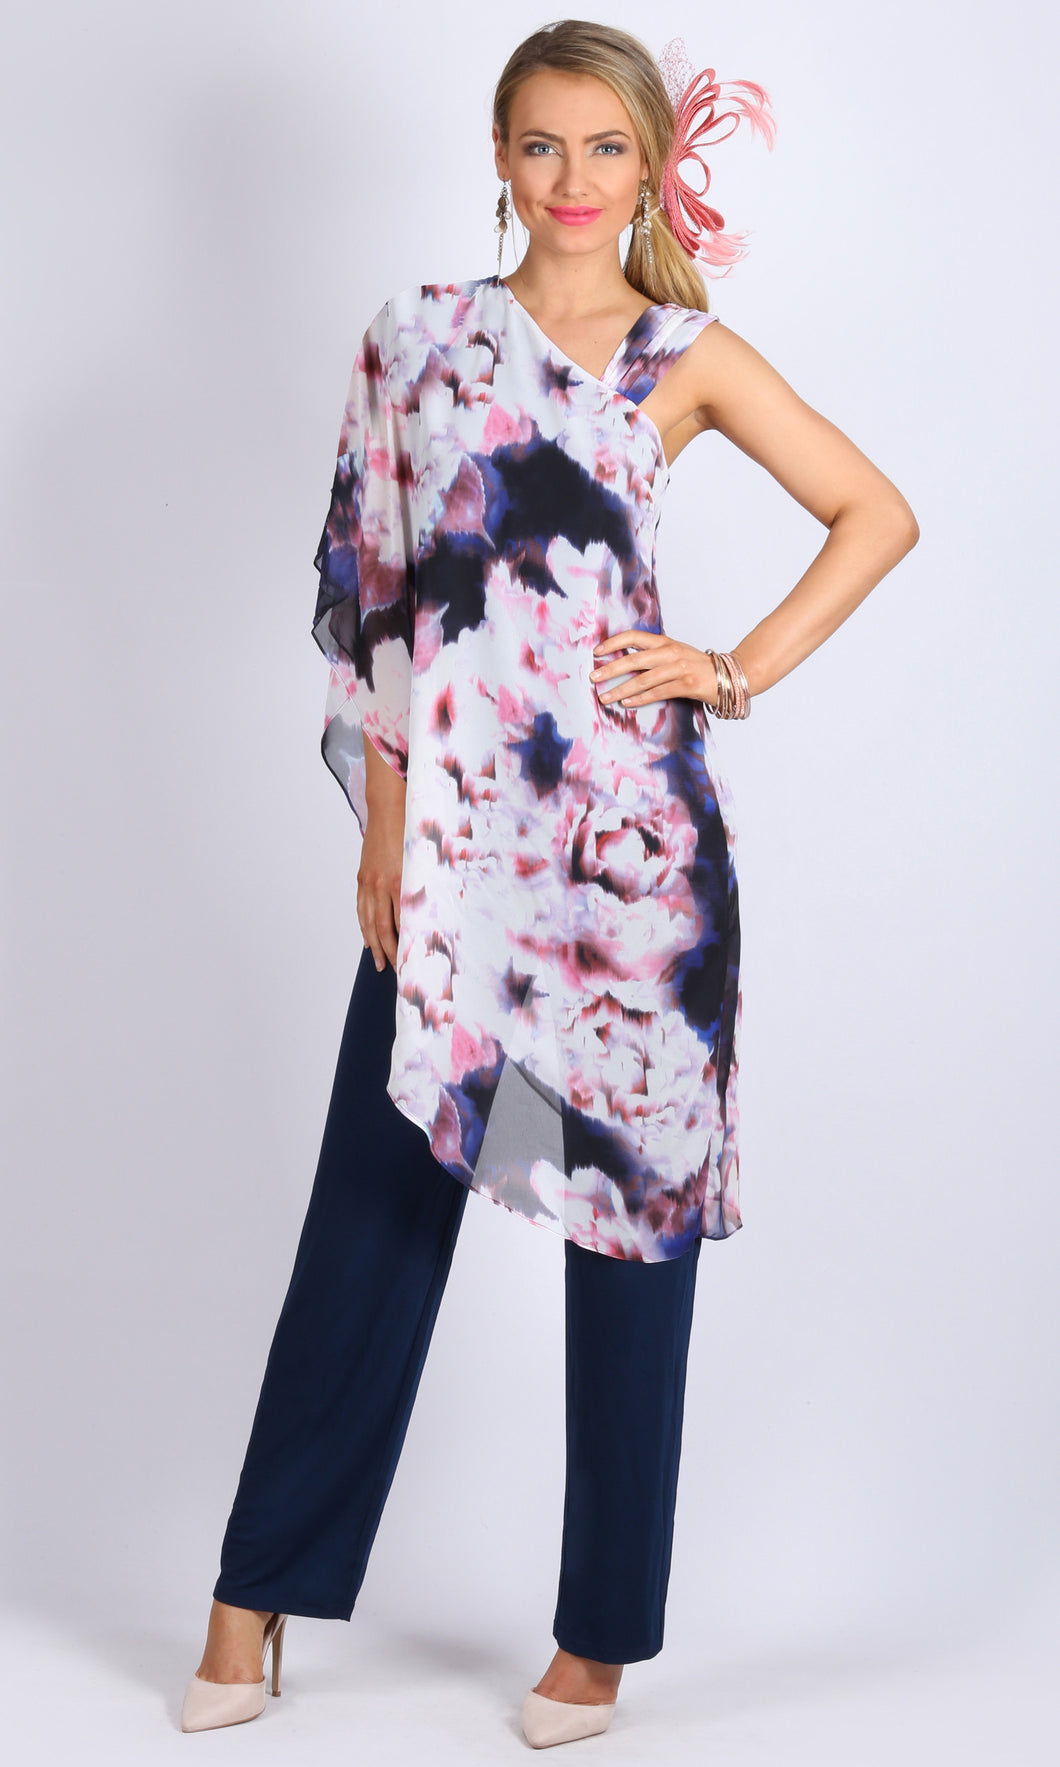 Floral Print Chiffon Overlay Jumpsuit